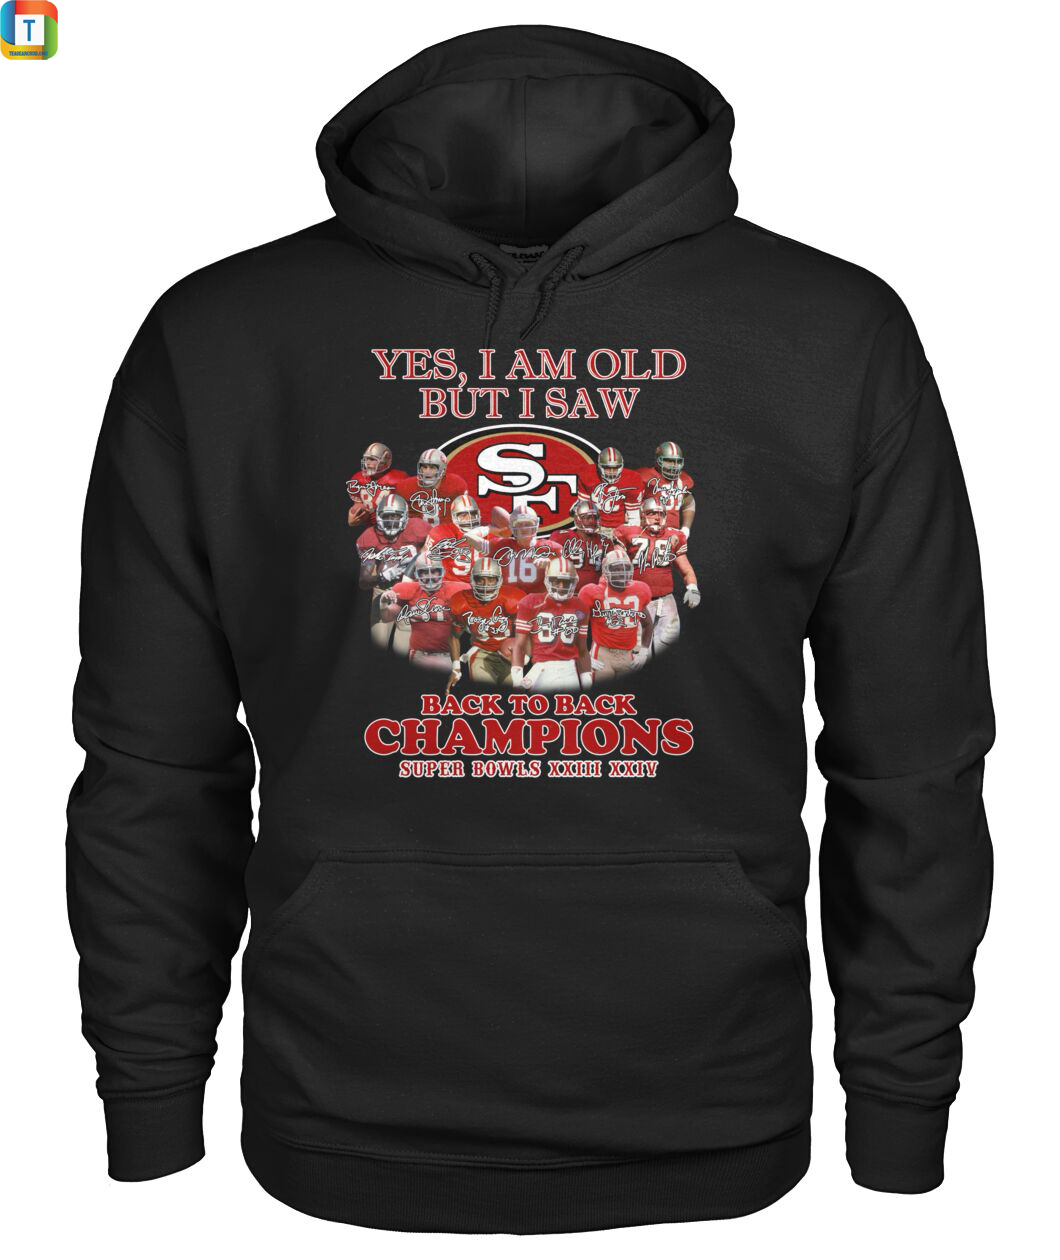 Yes I am old but I saw San Francisco 49ers back to back champions hoodie